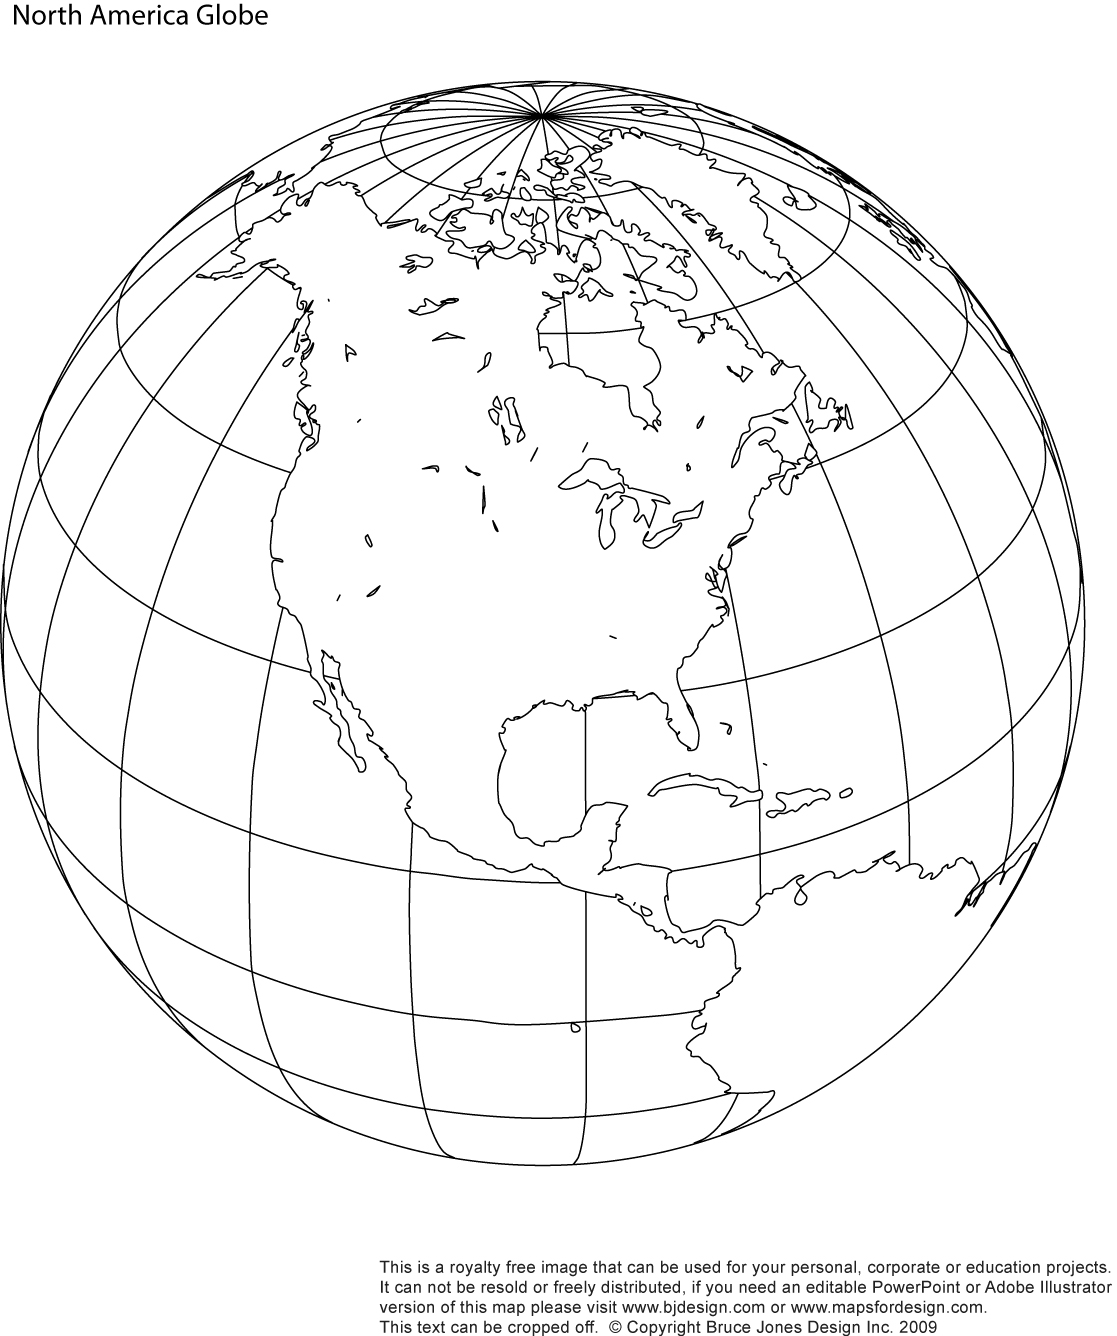 World Globe North America printable blank map, royalty free, jpg